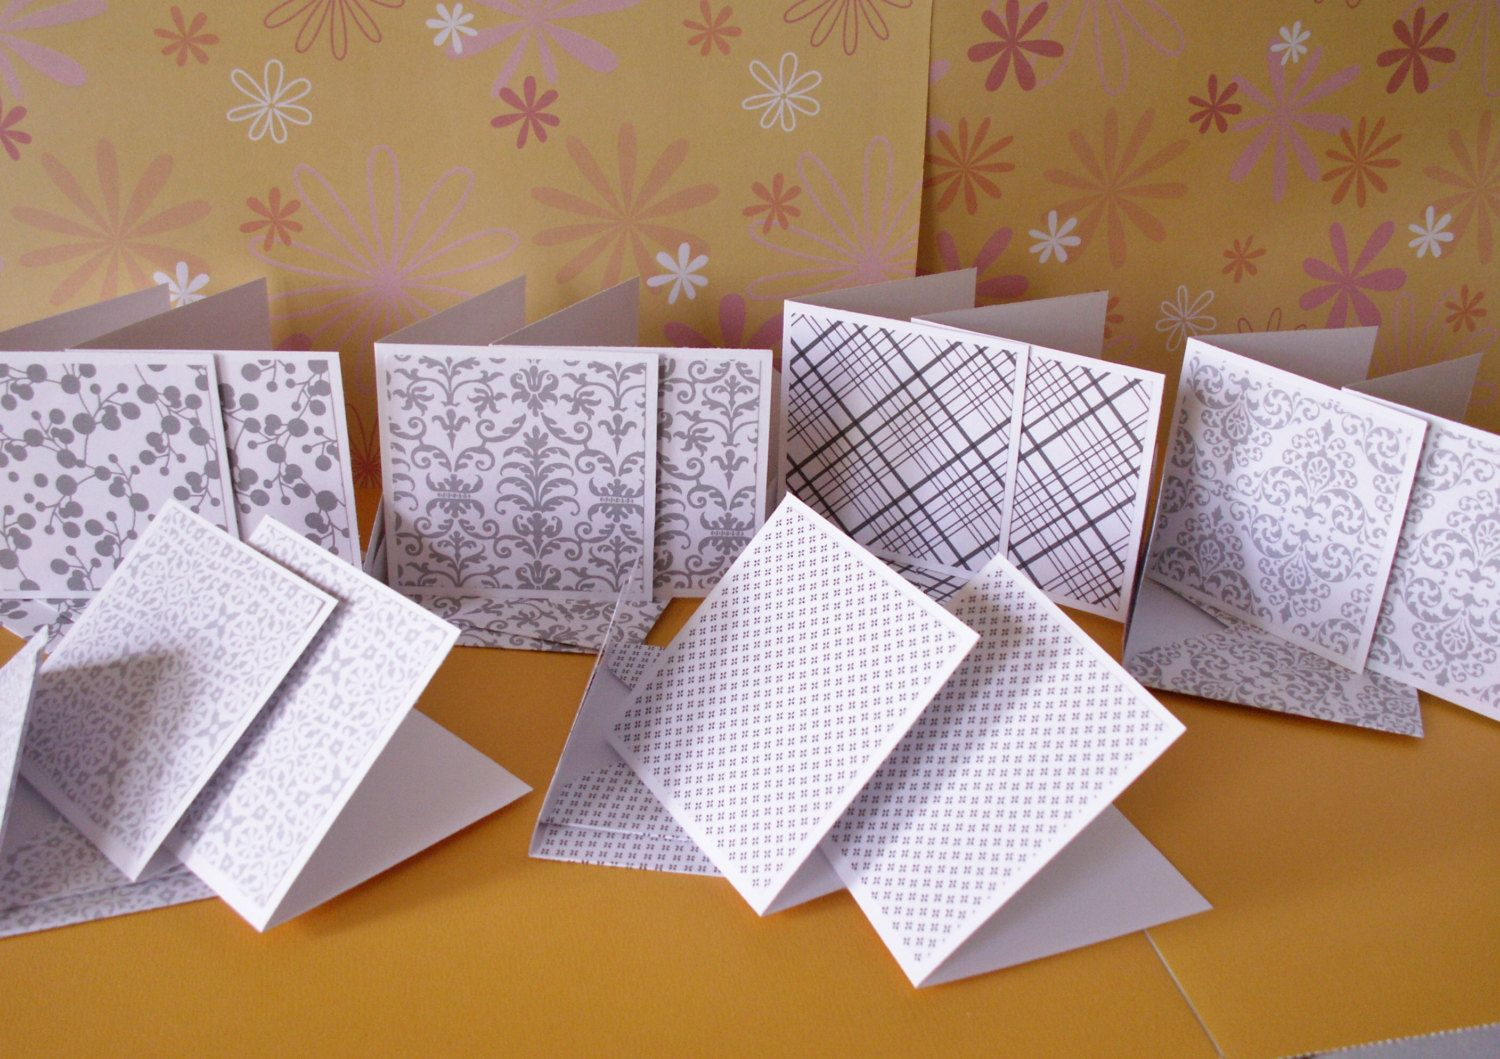 12 3 by 3 inch gray and white pattern note cards with matching envelopes by memories4alifetime on Etsy